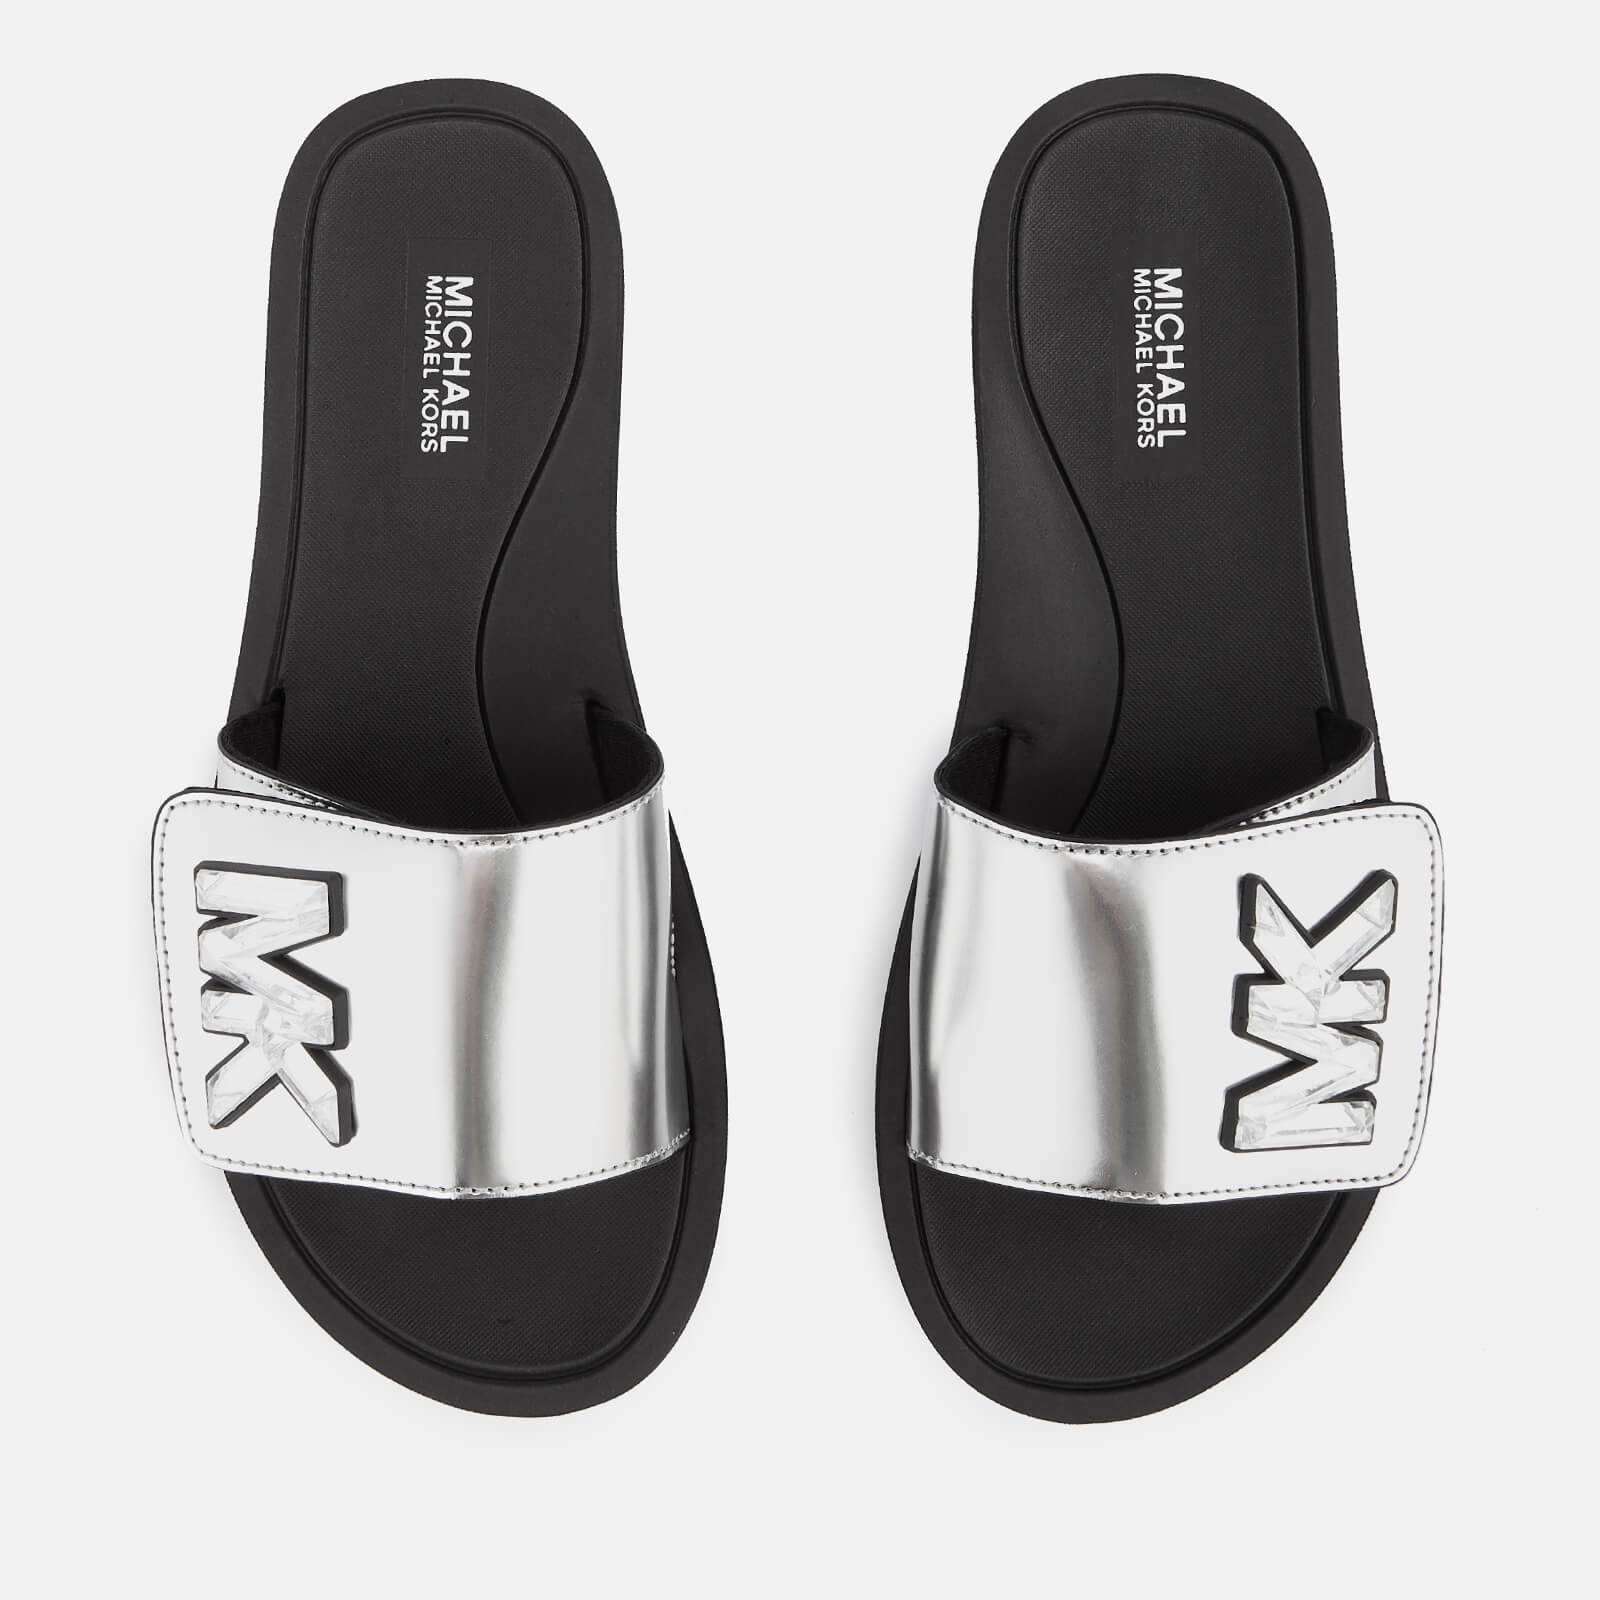 MICHAEL MICHAEL KORS Women's MK Slide Sandals - Silver - UK 7/US 10 - Silver